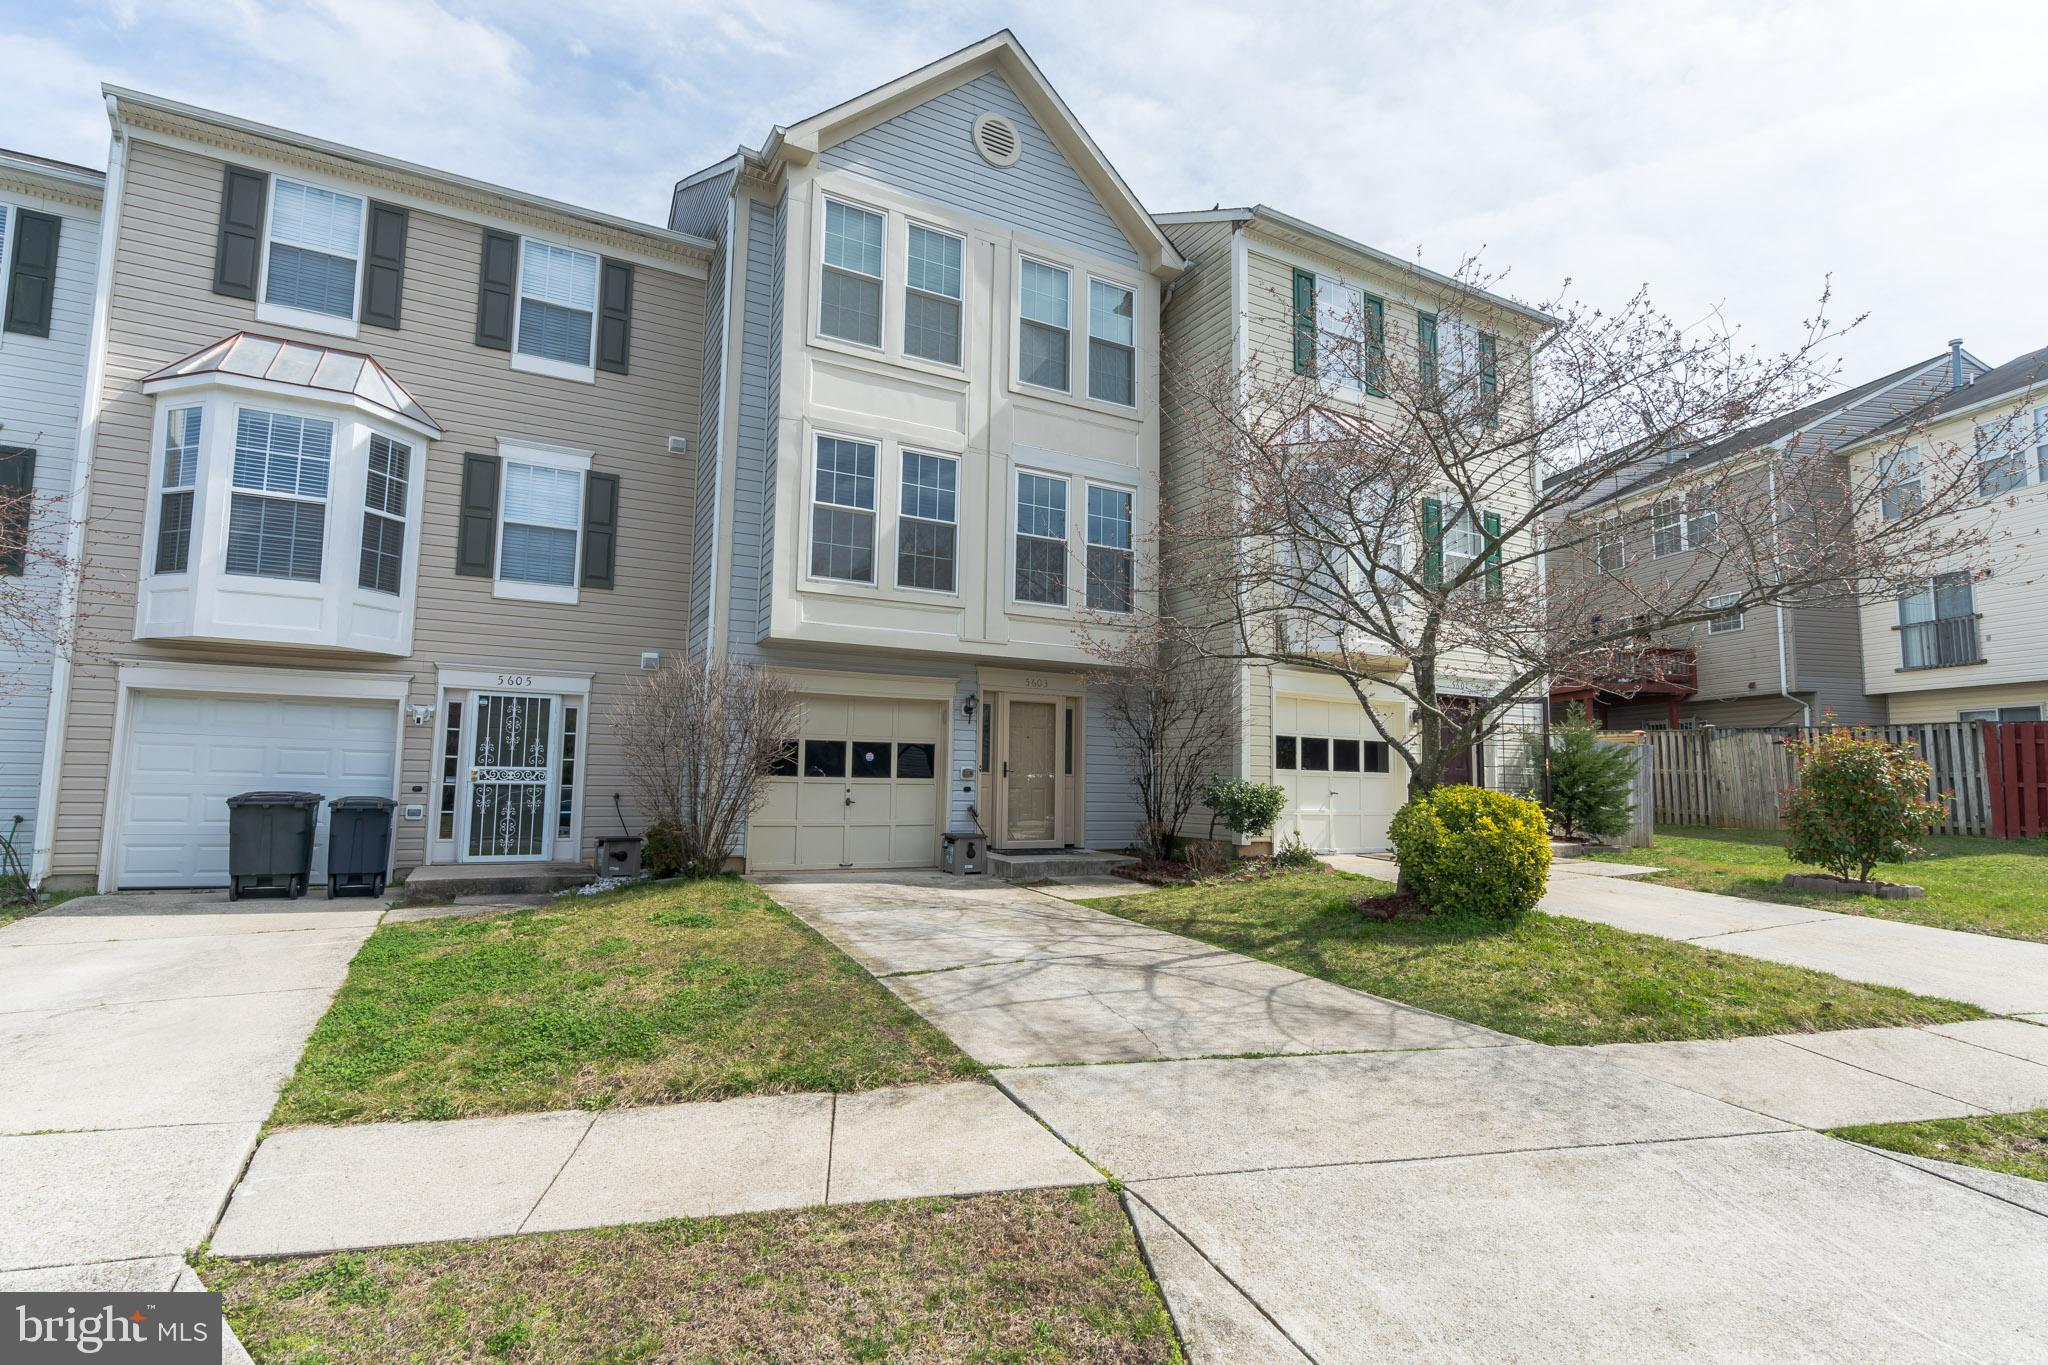 5603 MARY A COURT, BLADENSBURG, MD 20710